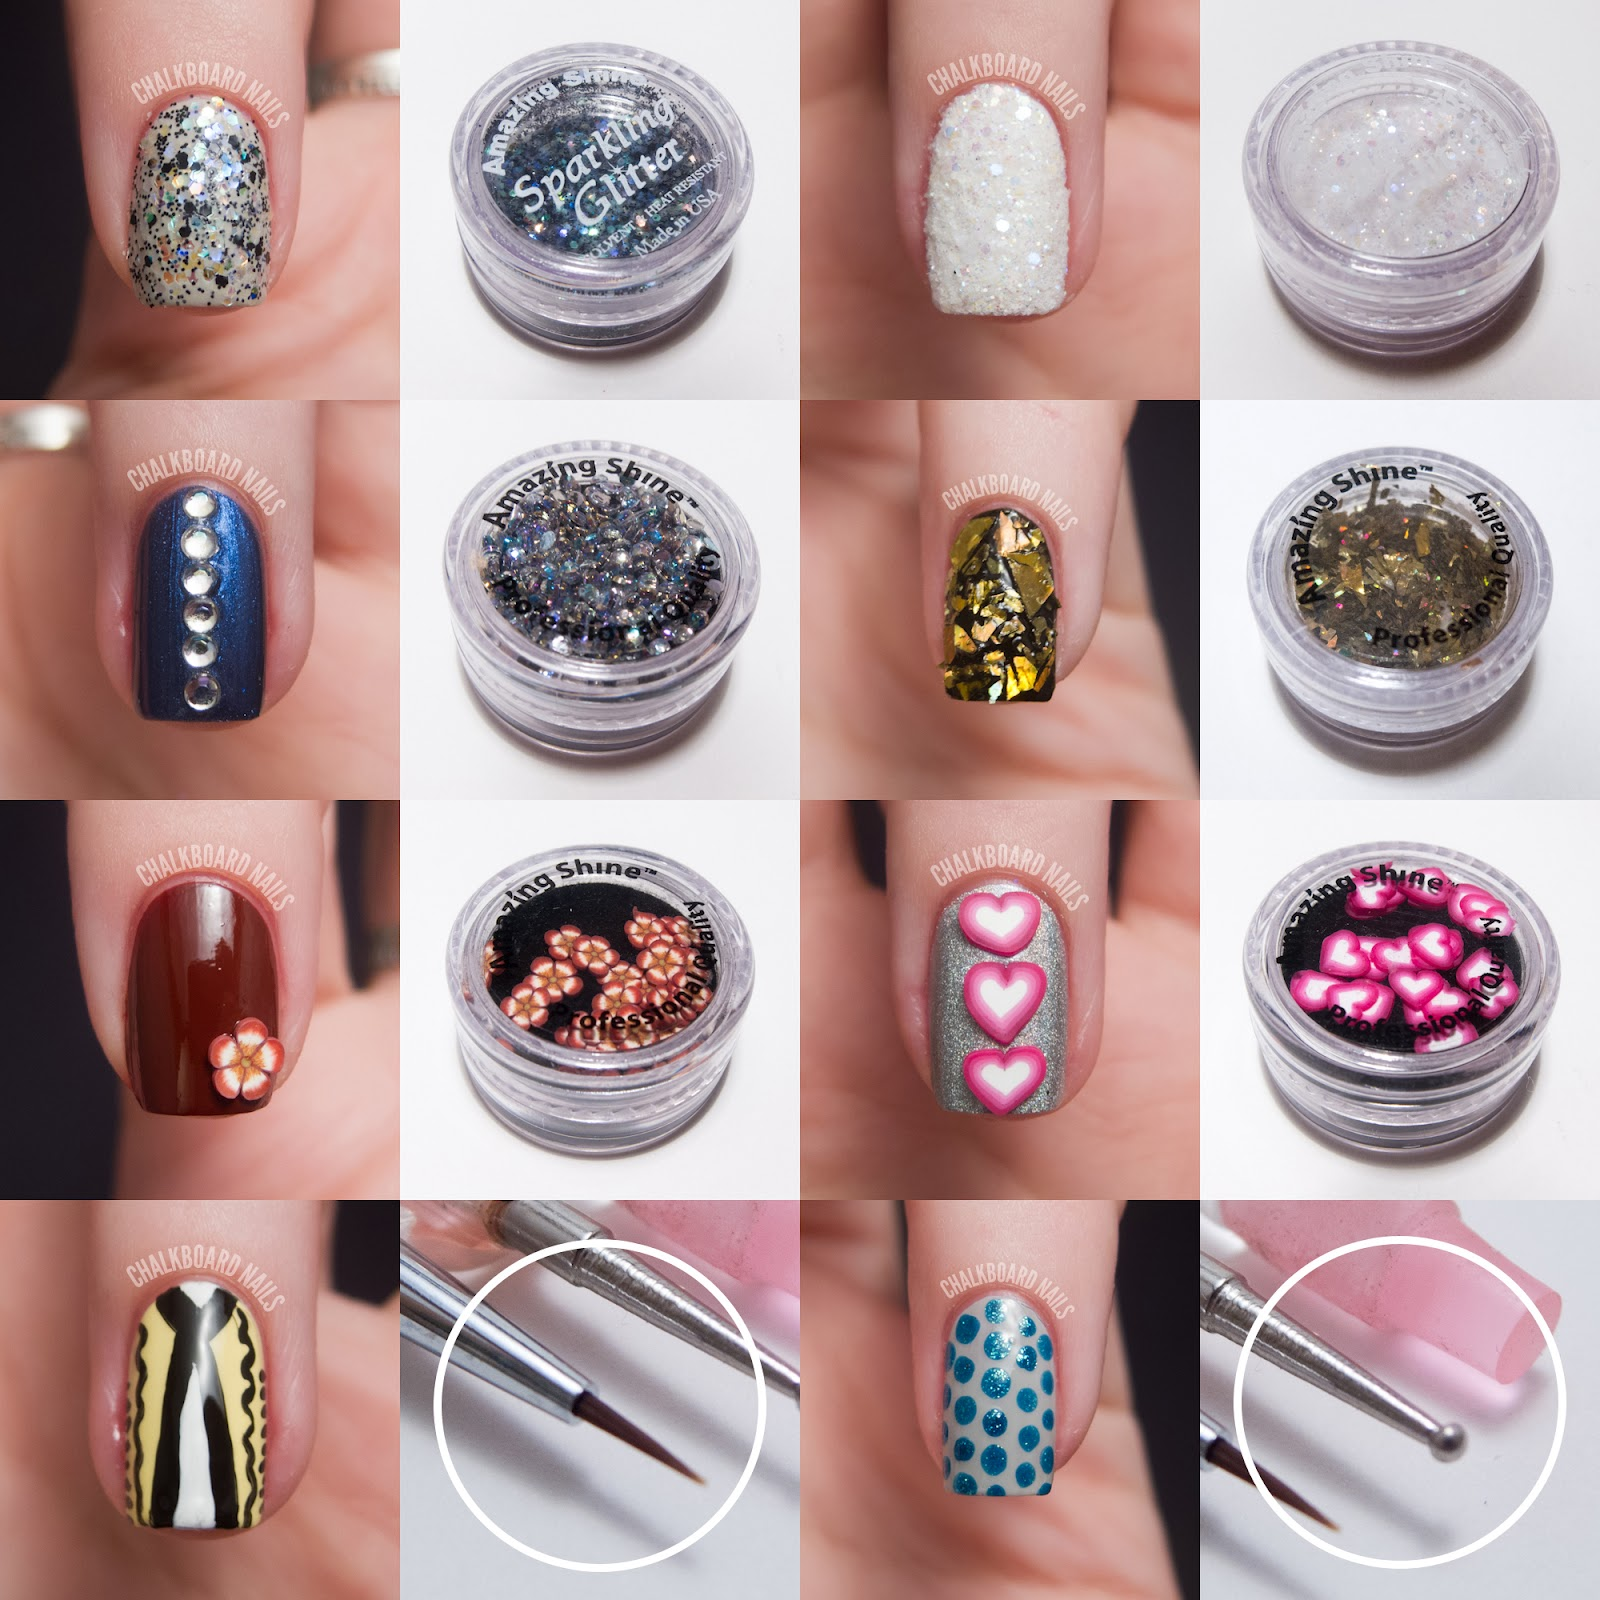 Amazing Shine Nail Art Kit Review